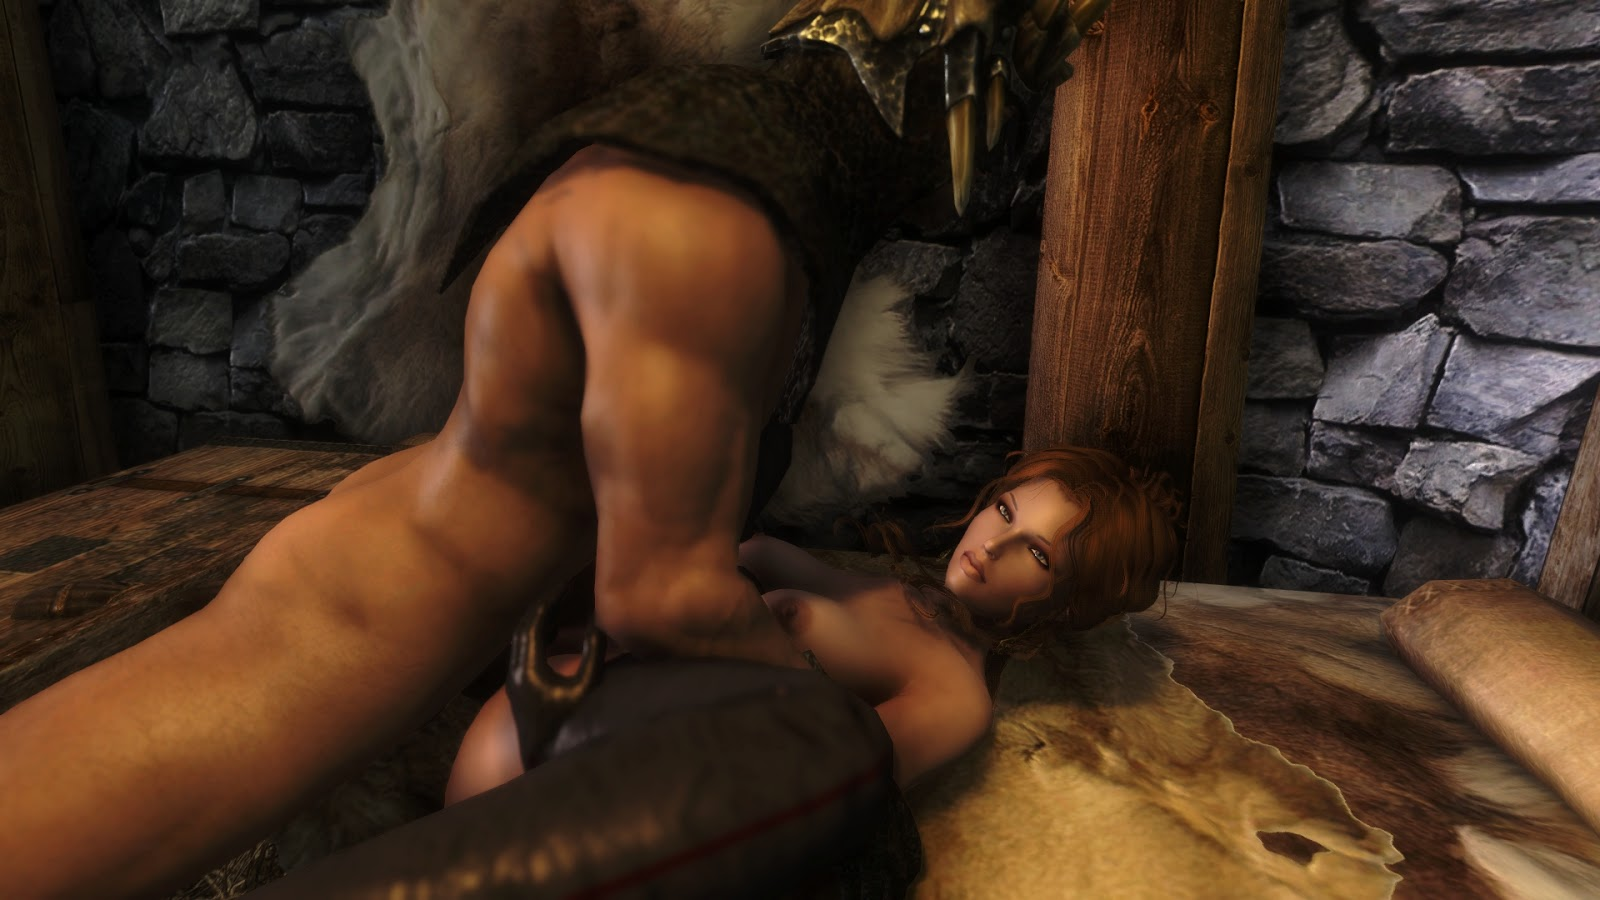 Monster dragon porn videos gay skyrim z  hentia film